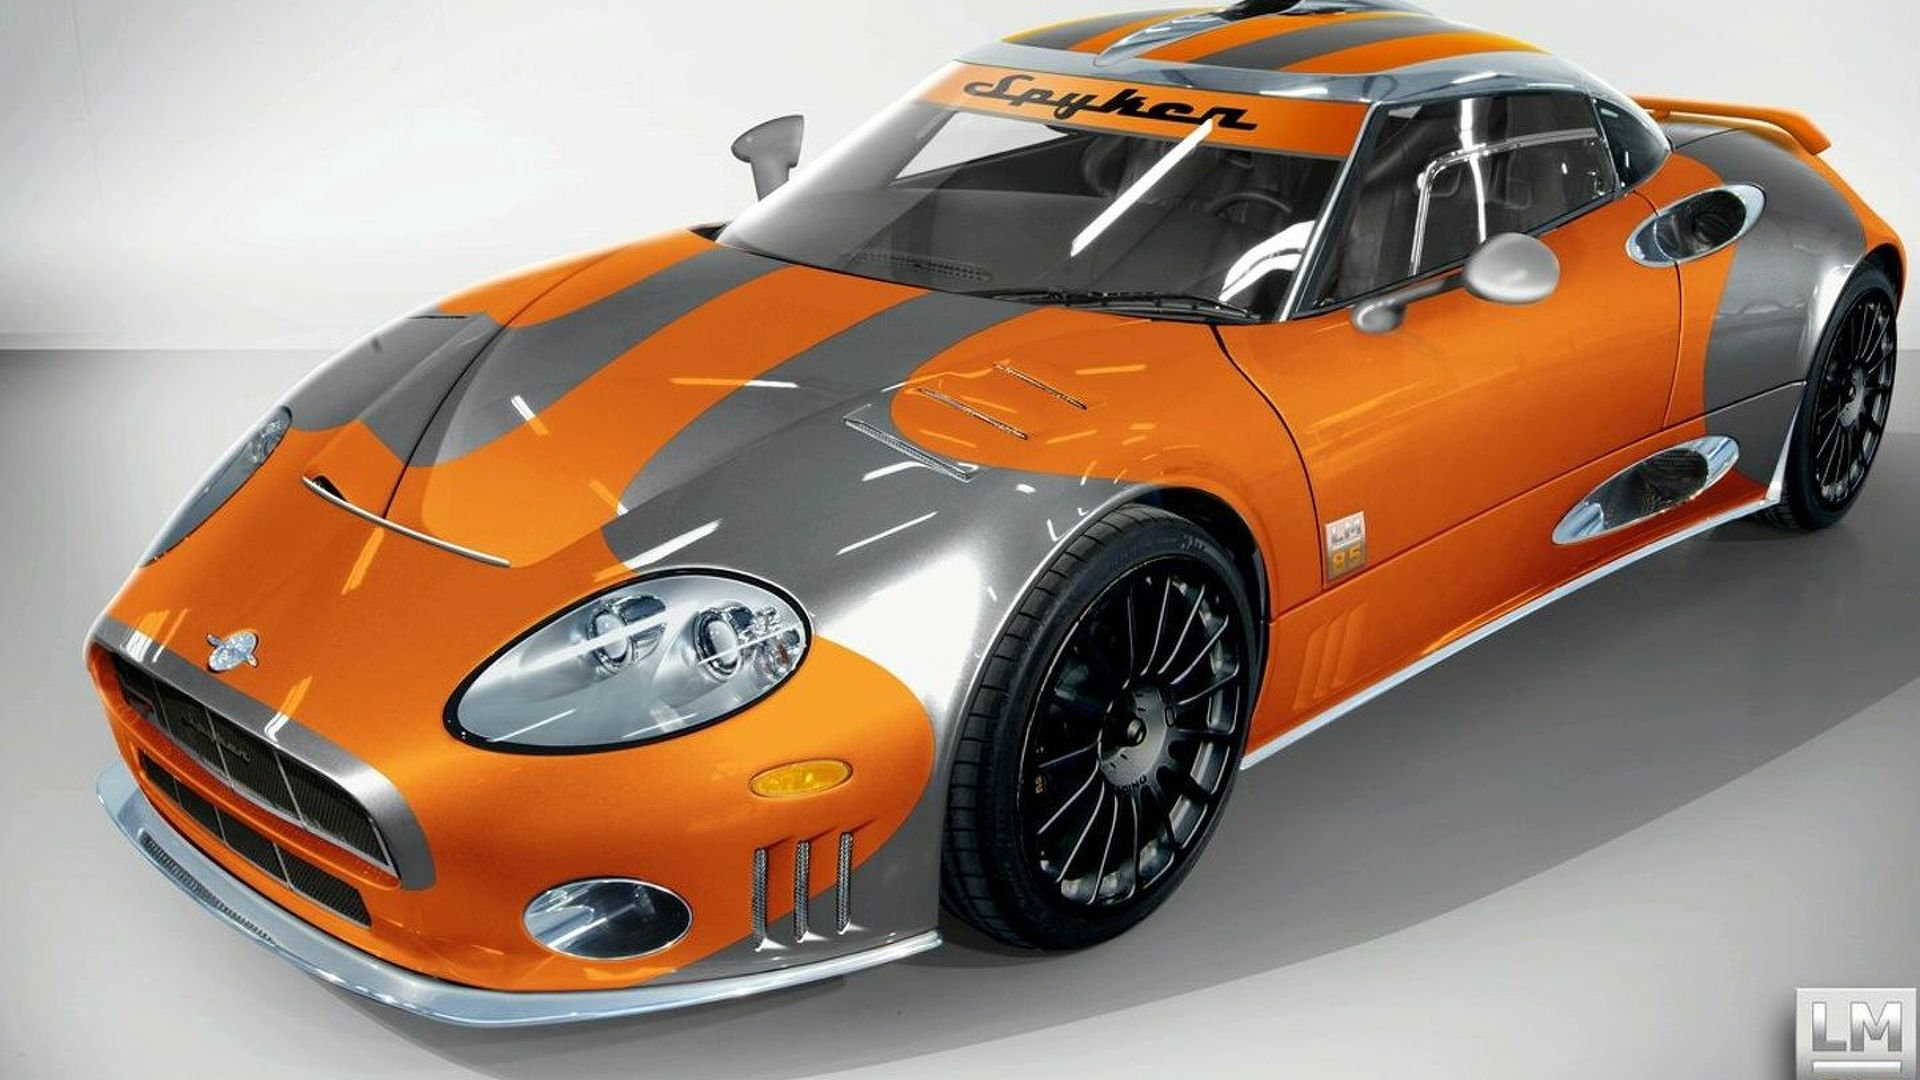 Spyker Introduces Spyker C8 Laviolette LM85